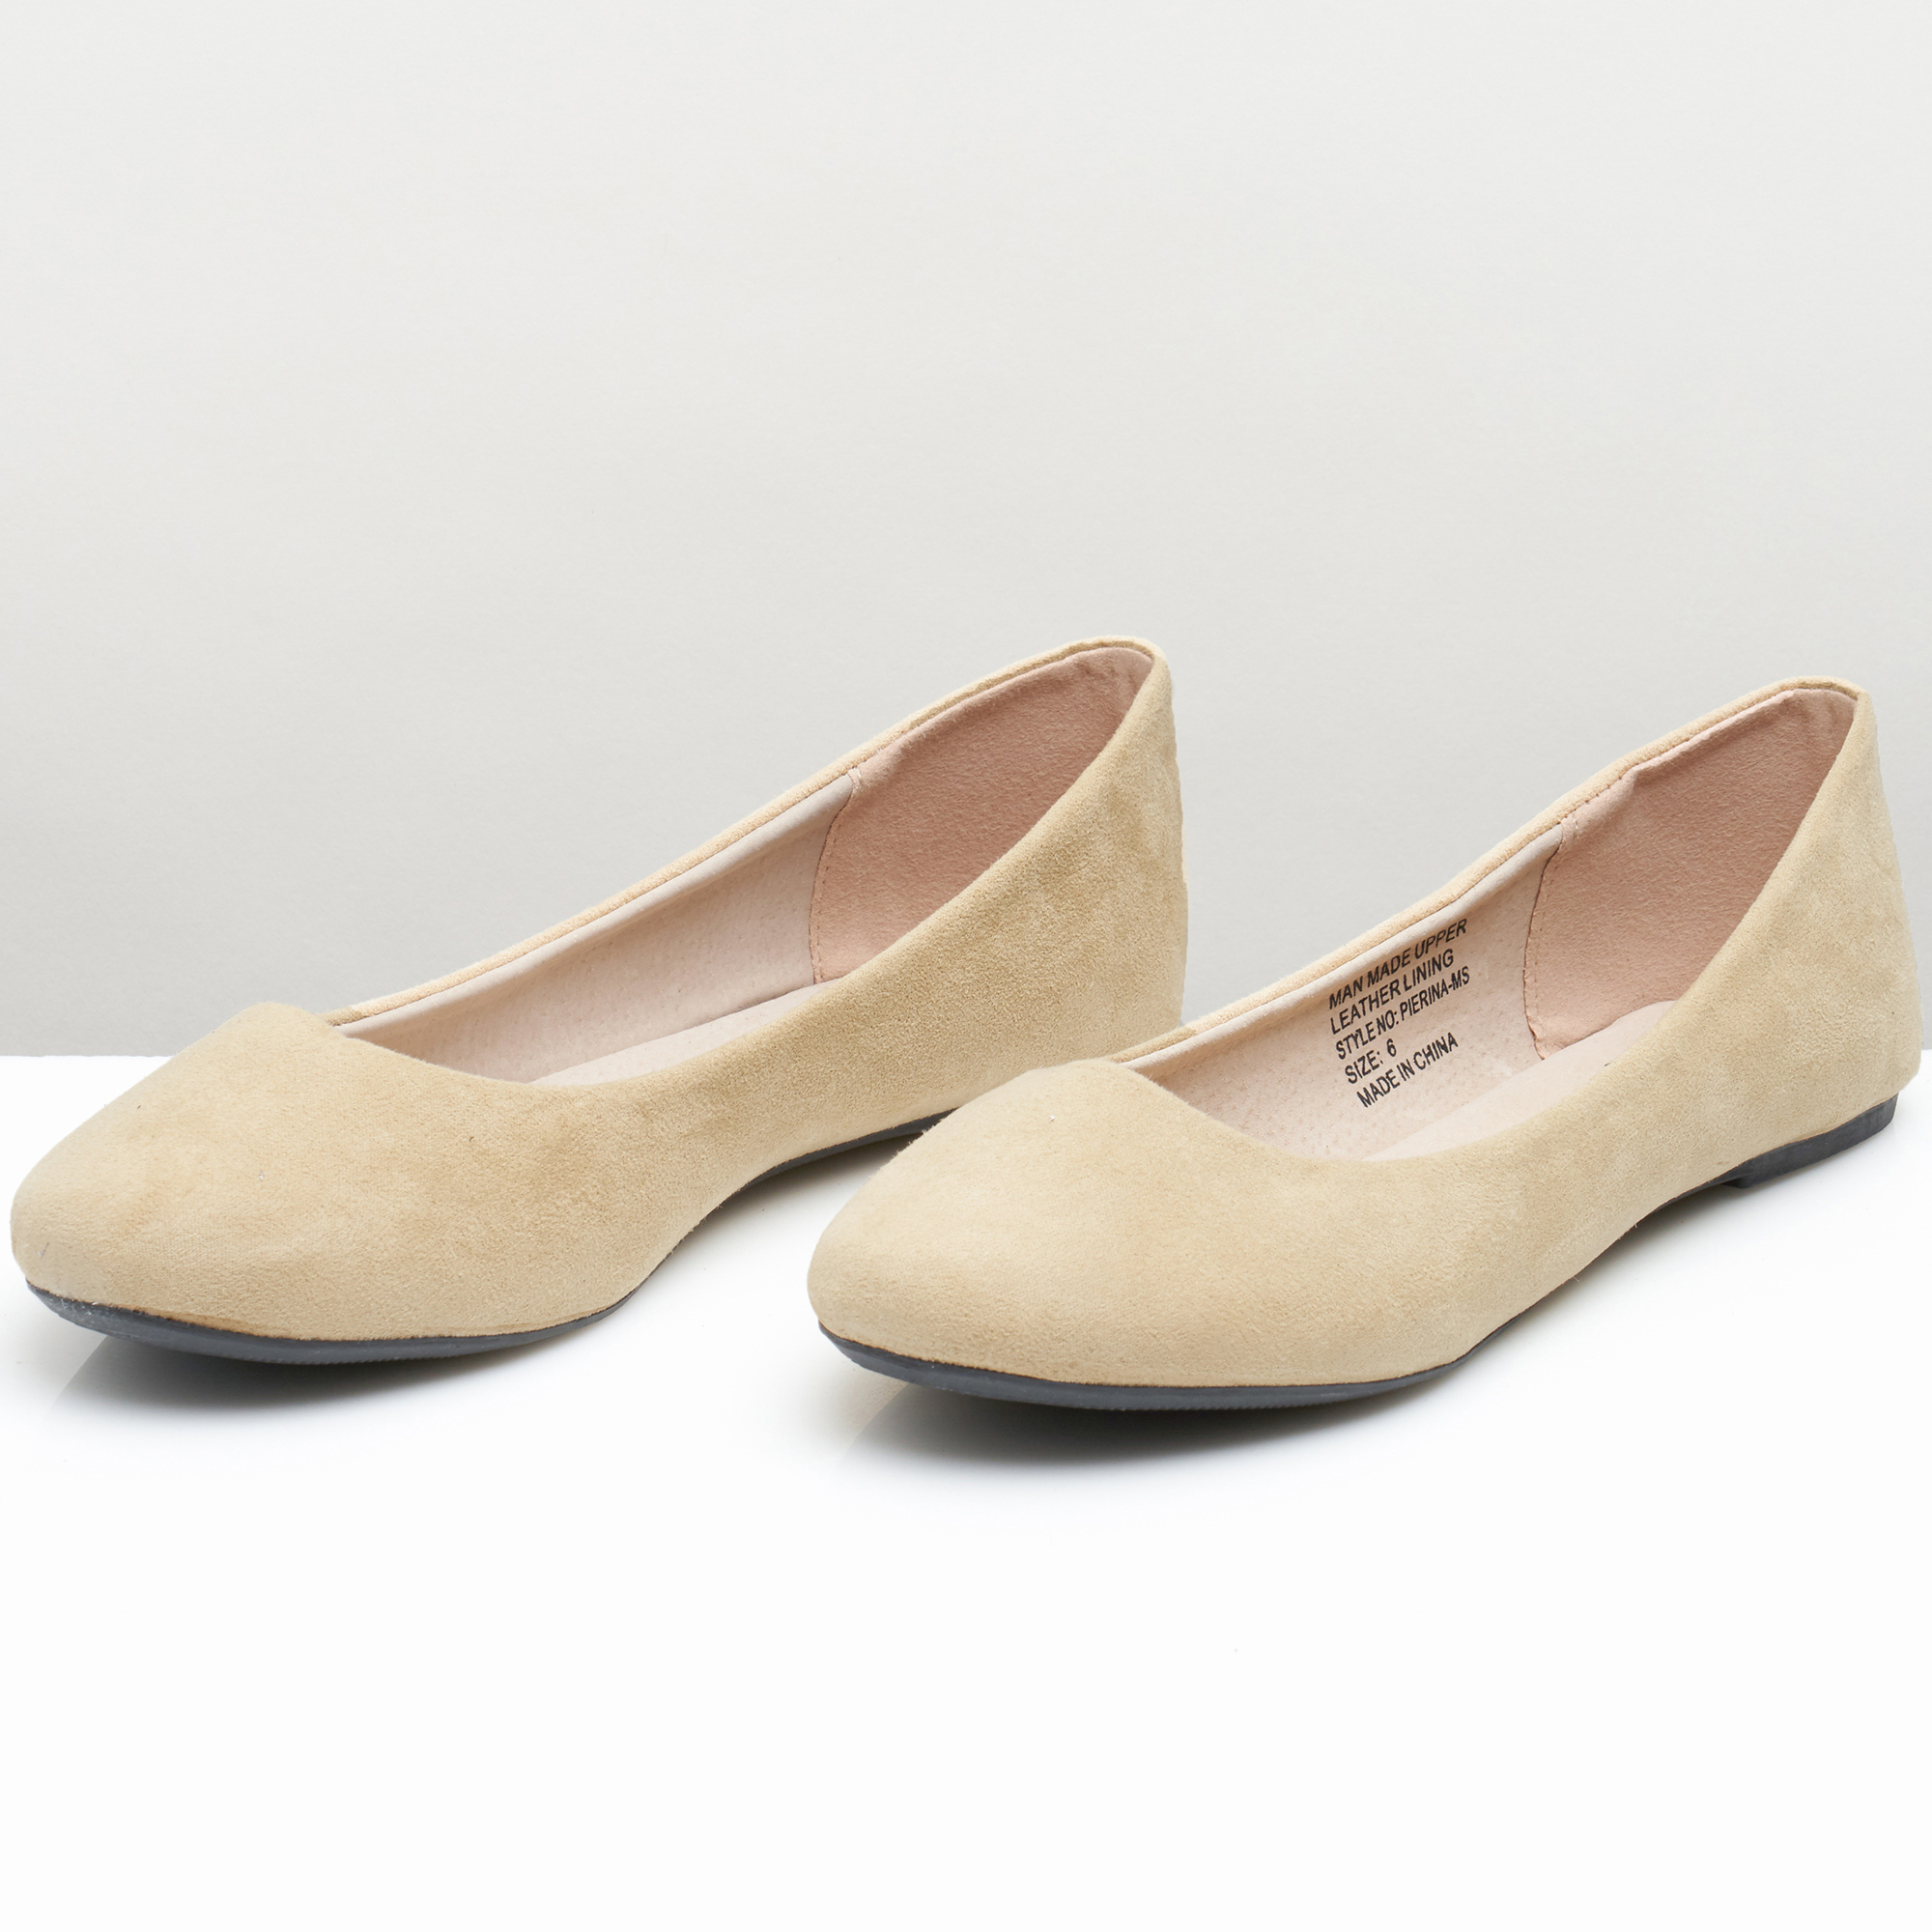 Alpine-Swiss-Pierina-Womens-Ballet-Flats-Leather-Lined-Classic-Slip-On-Shoes thumbnail 16